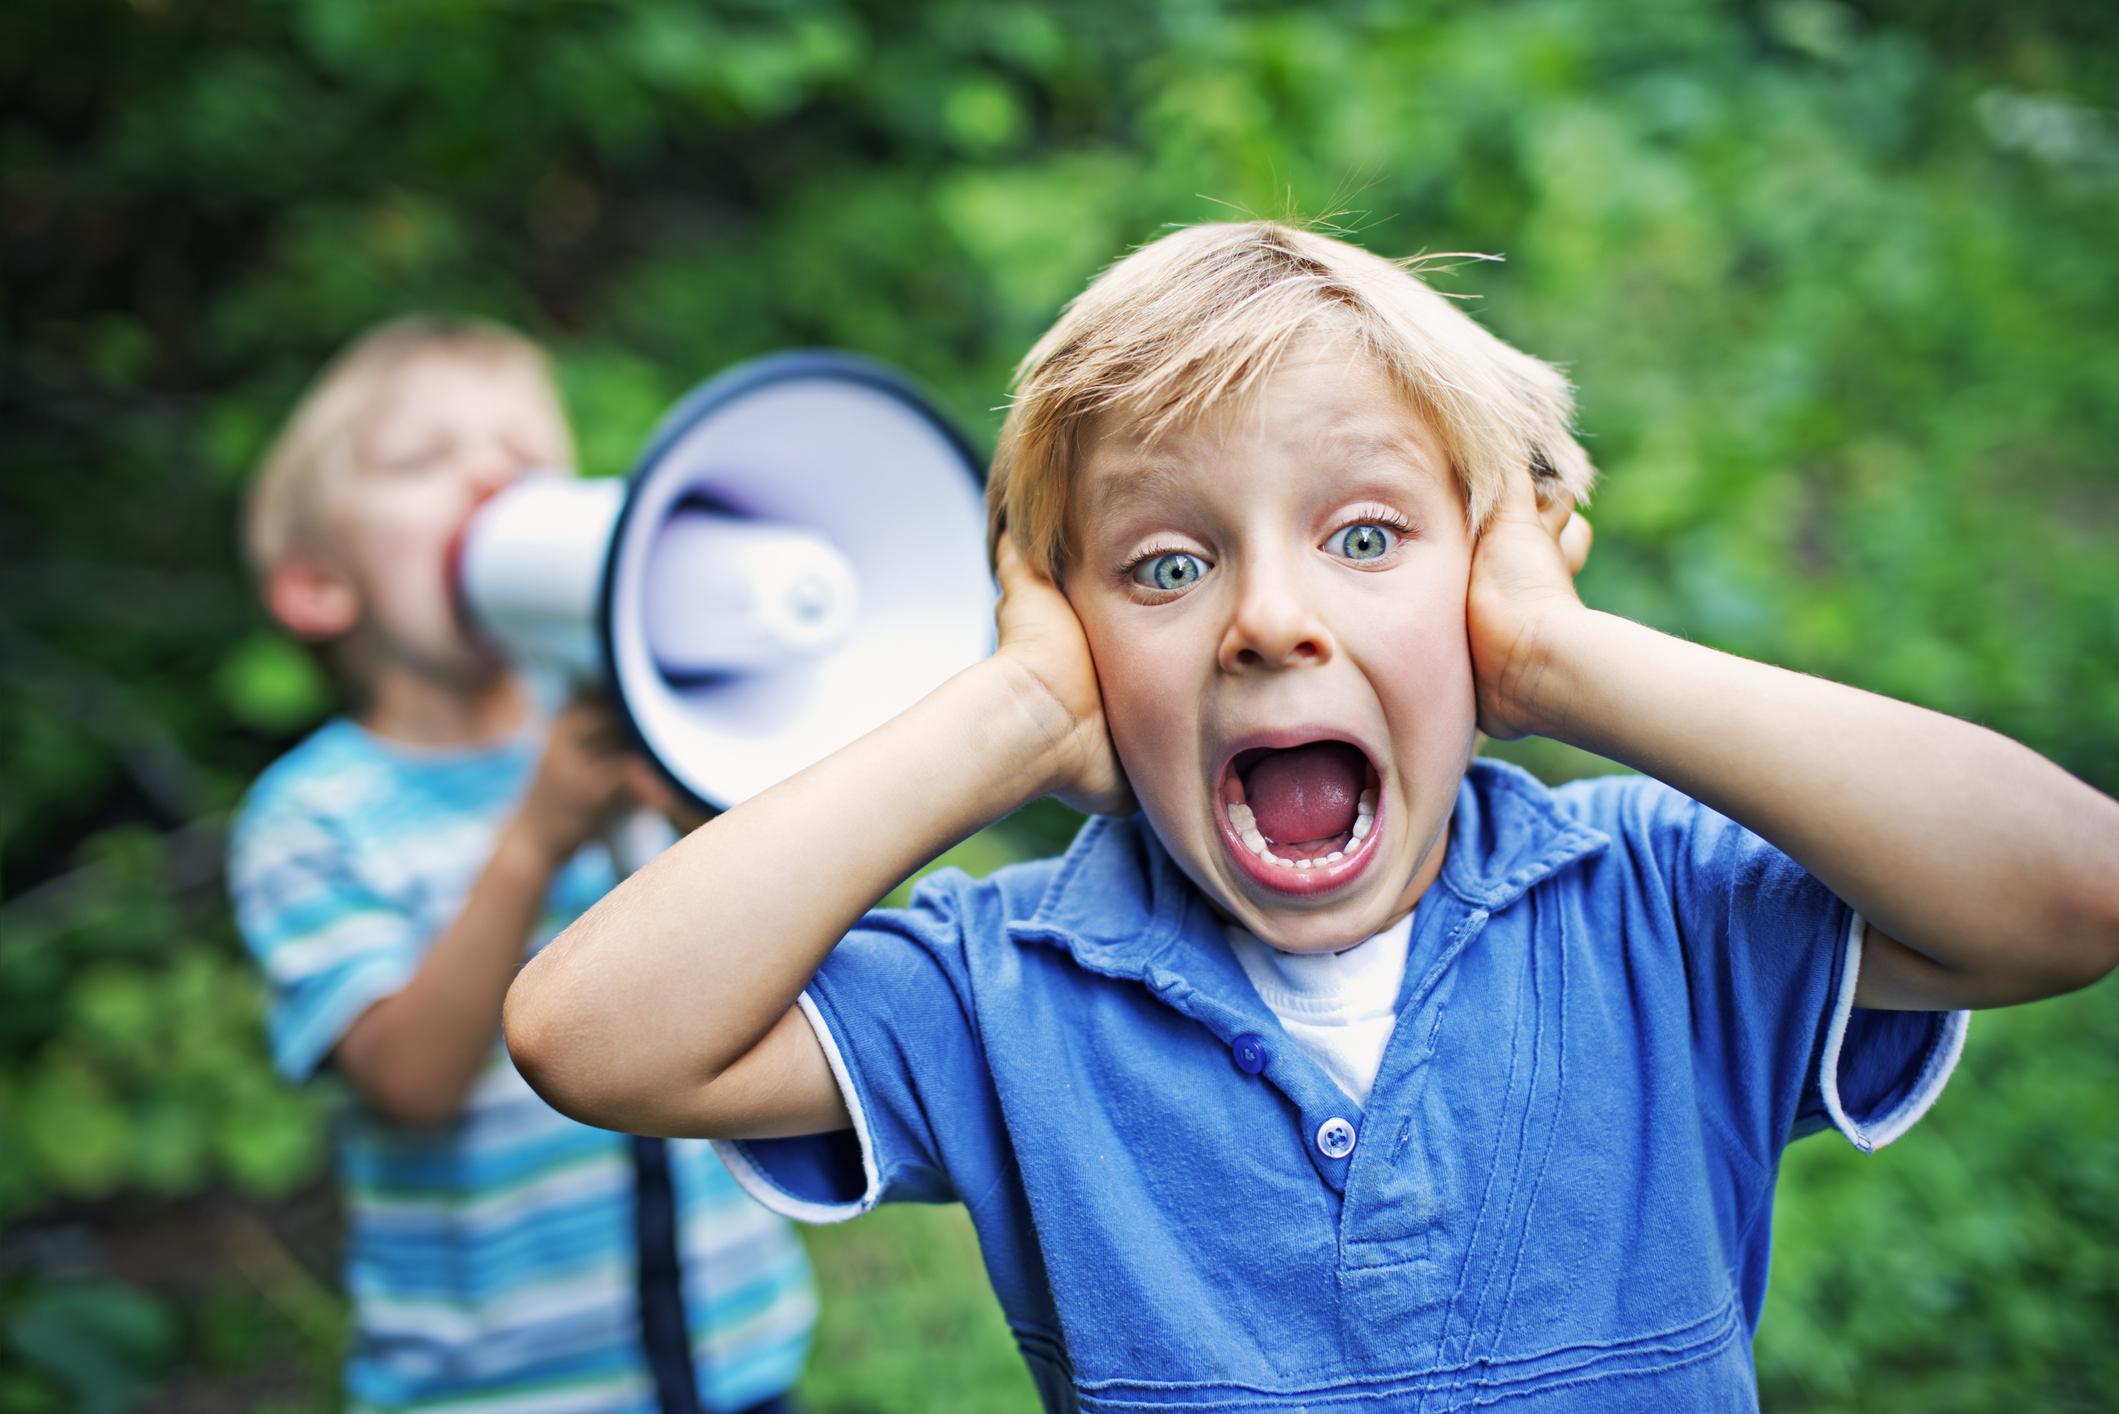 Little boy covering his ears while his brother is yelling on him with megaphone.